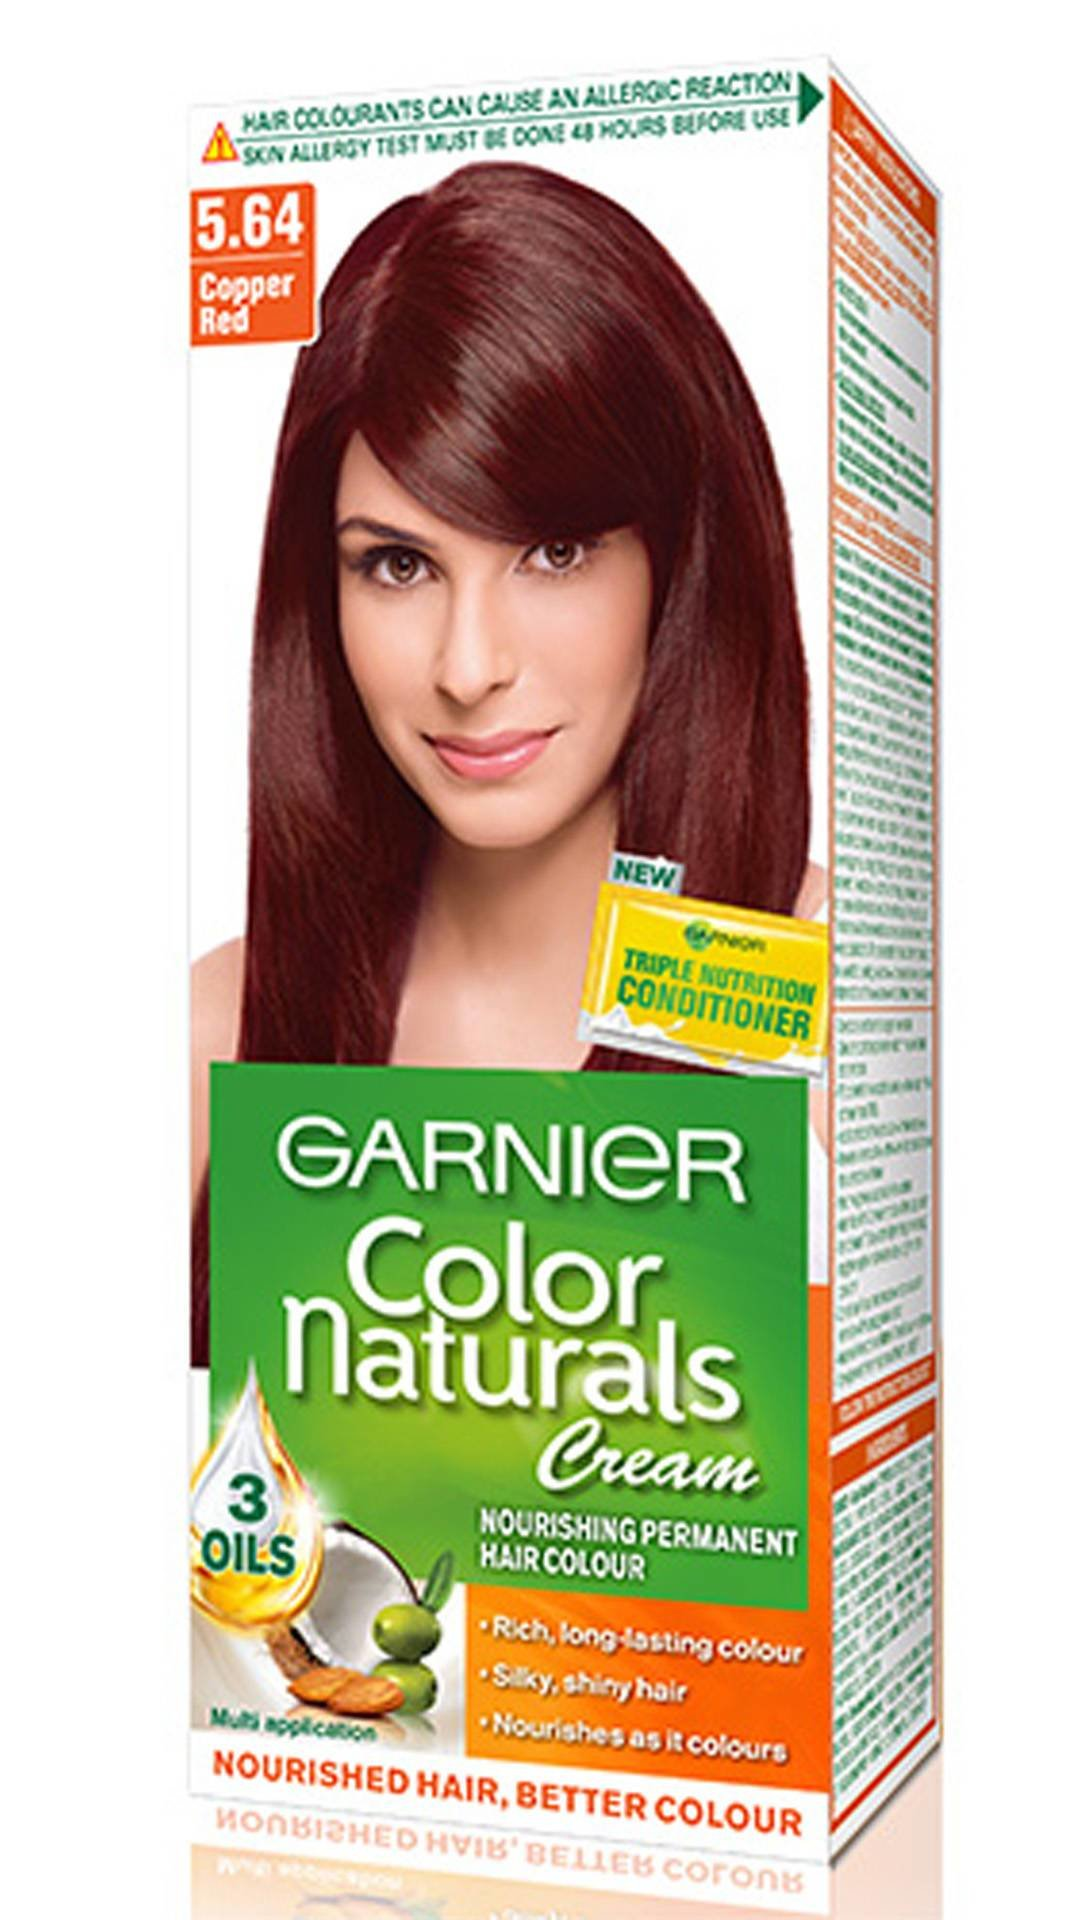 The Best Garnier Hair Color Garnier Hair Color Customer Review Pictures